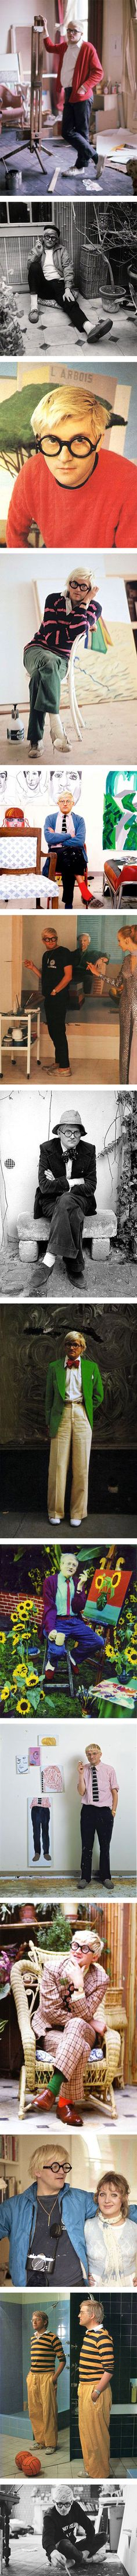 14 cool photos of David Hockney's best style moments via Nuji.com